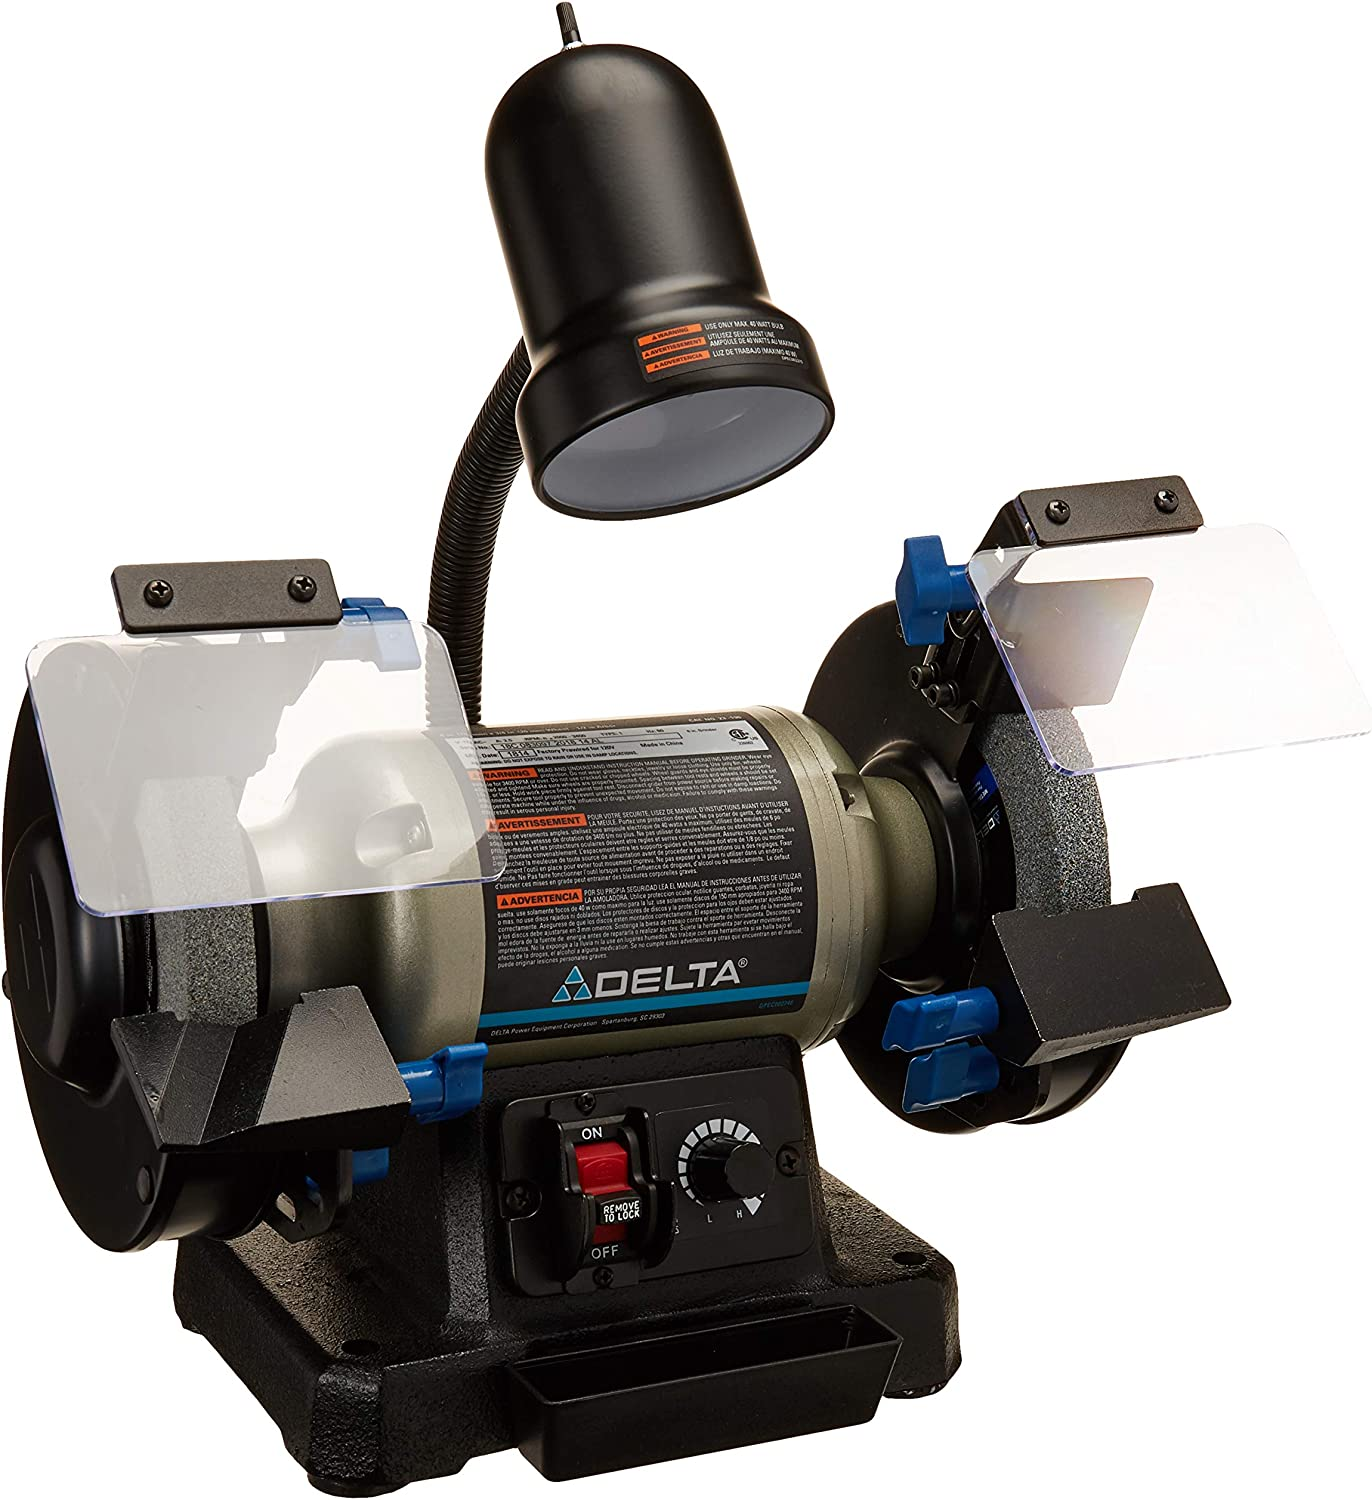 Delta Power Tools 6-Inch Variable Speed Bench Grinder